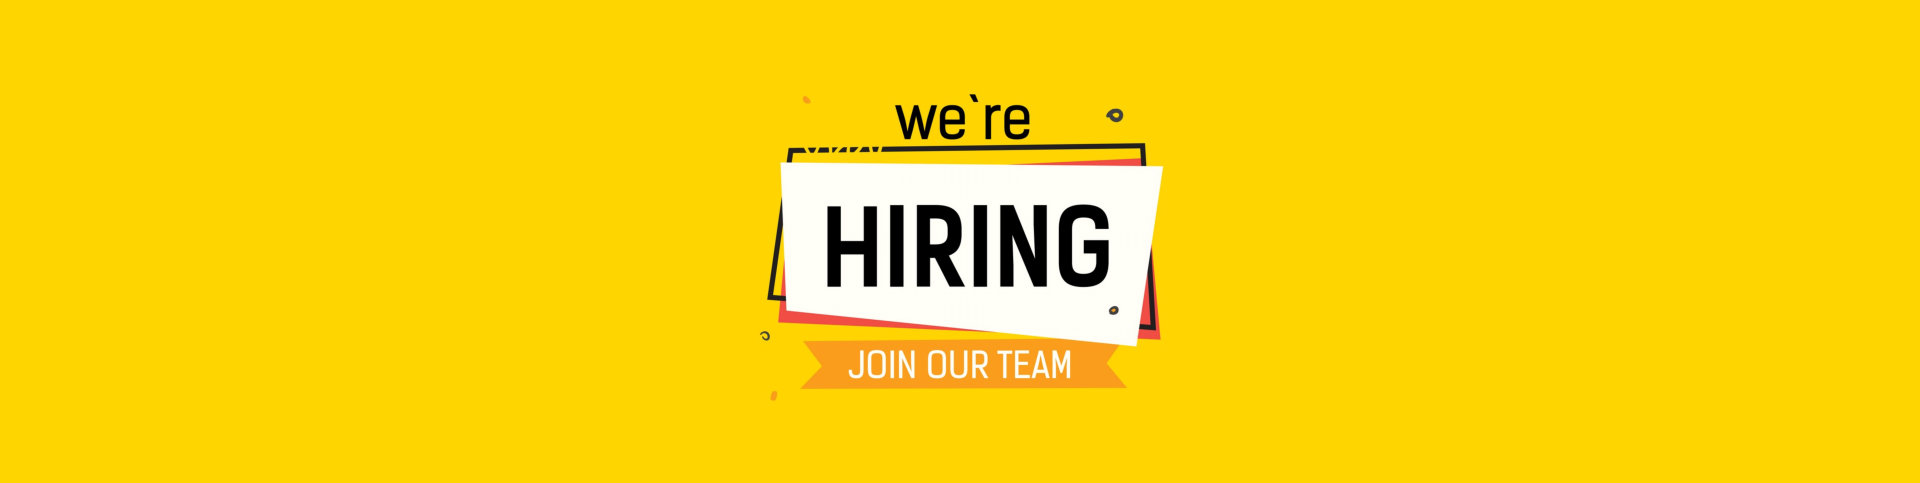 we are hiring text